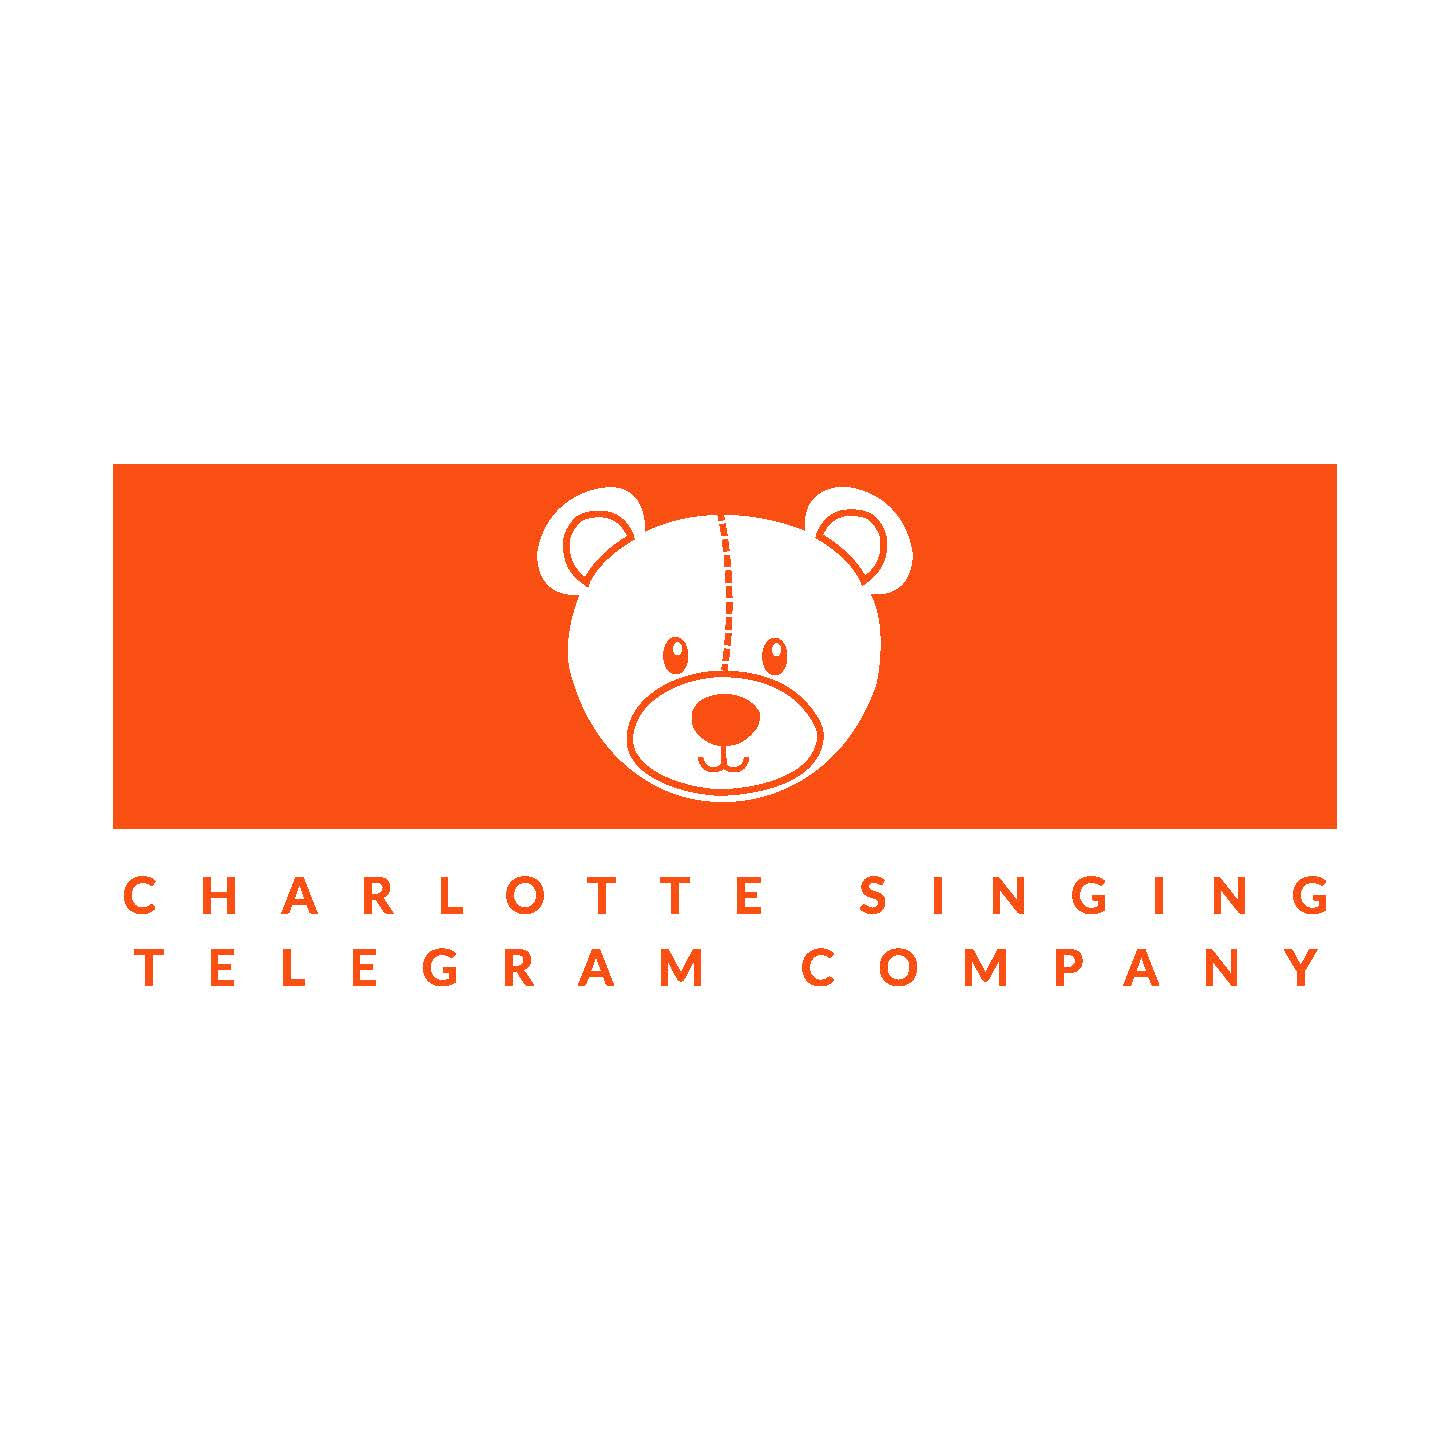 Charlotte singing telegram company logo 001 orange